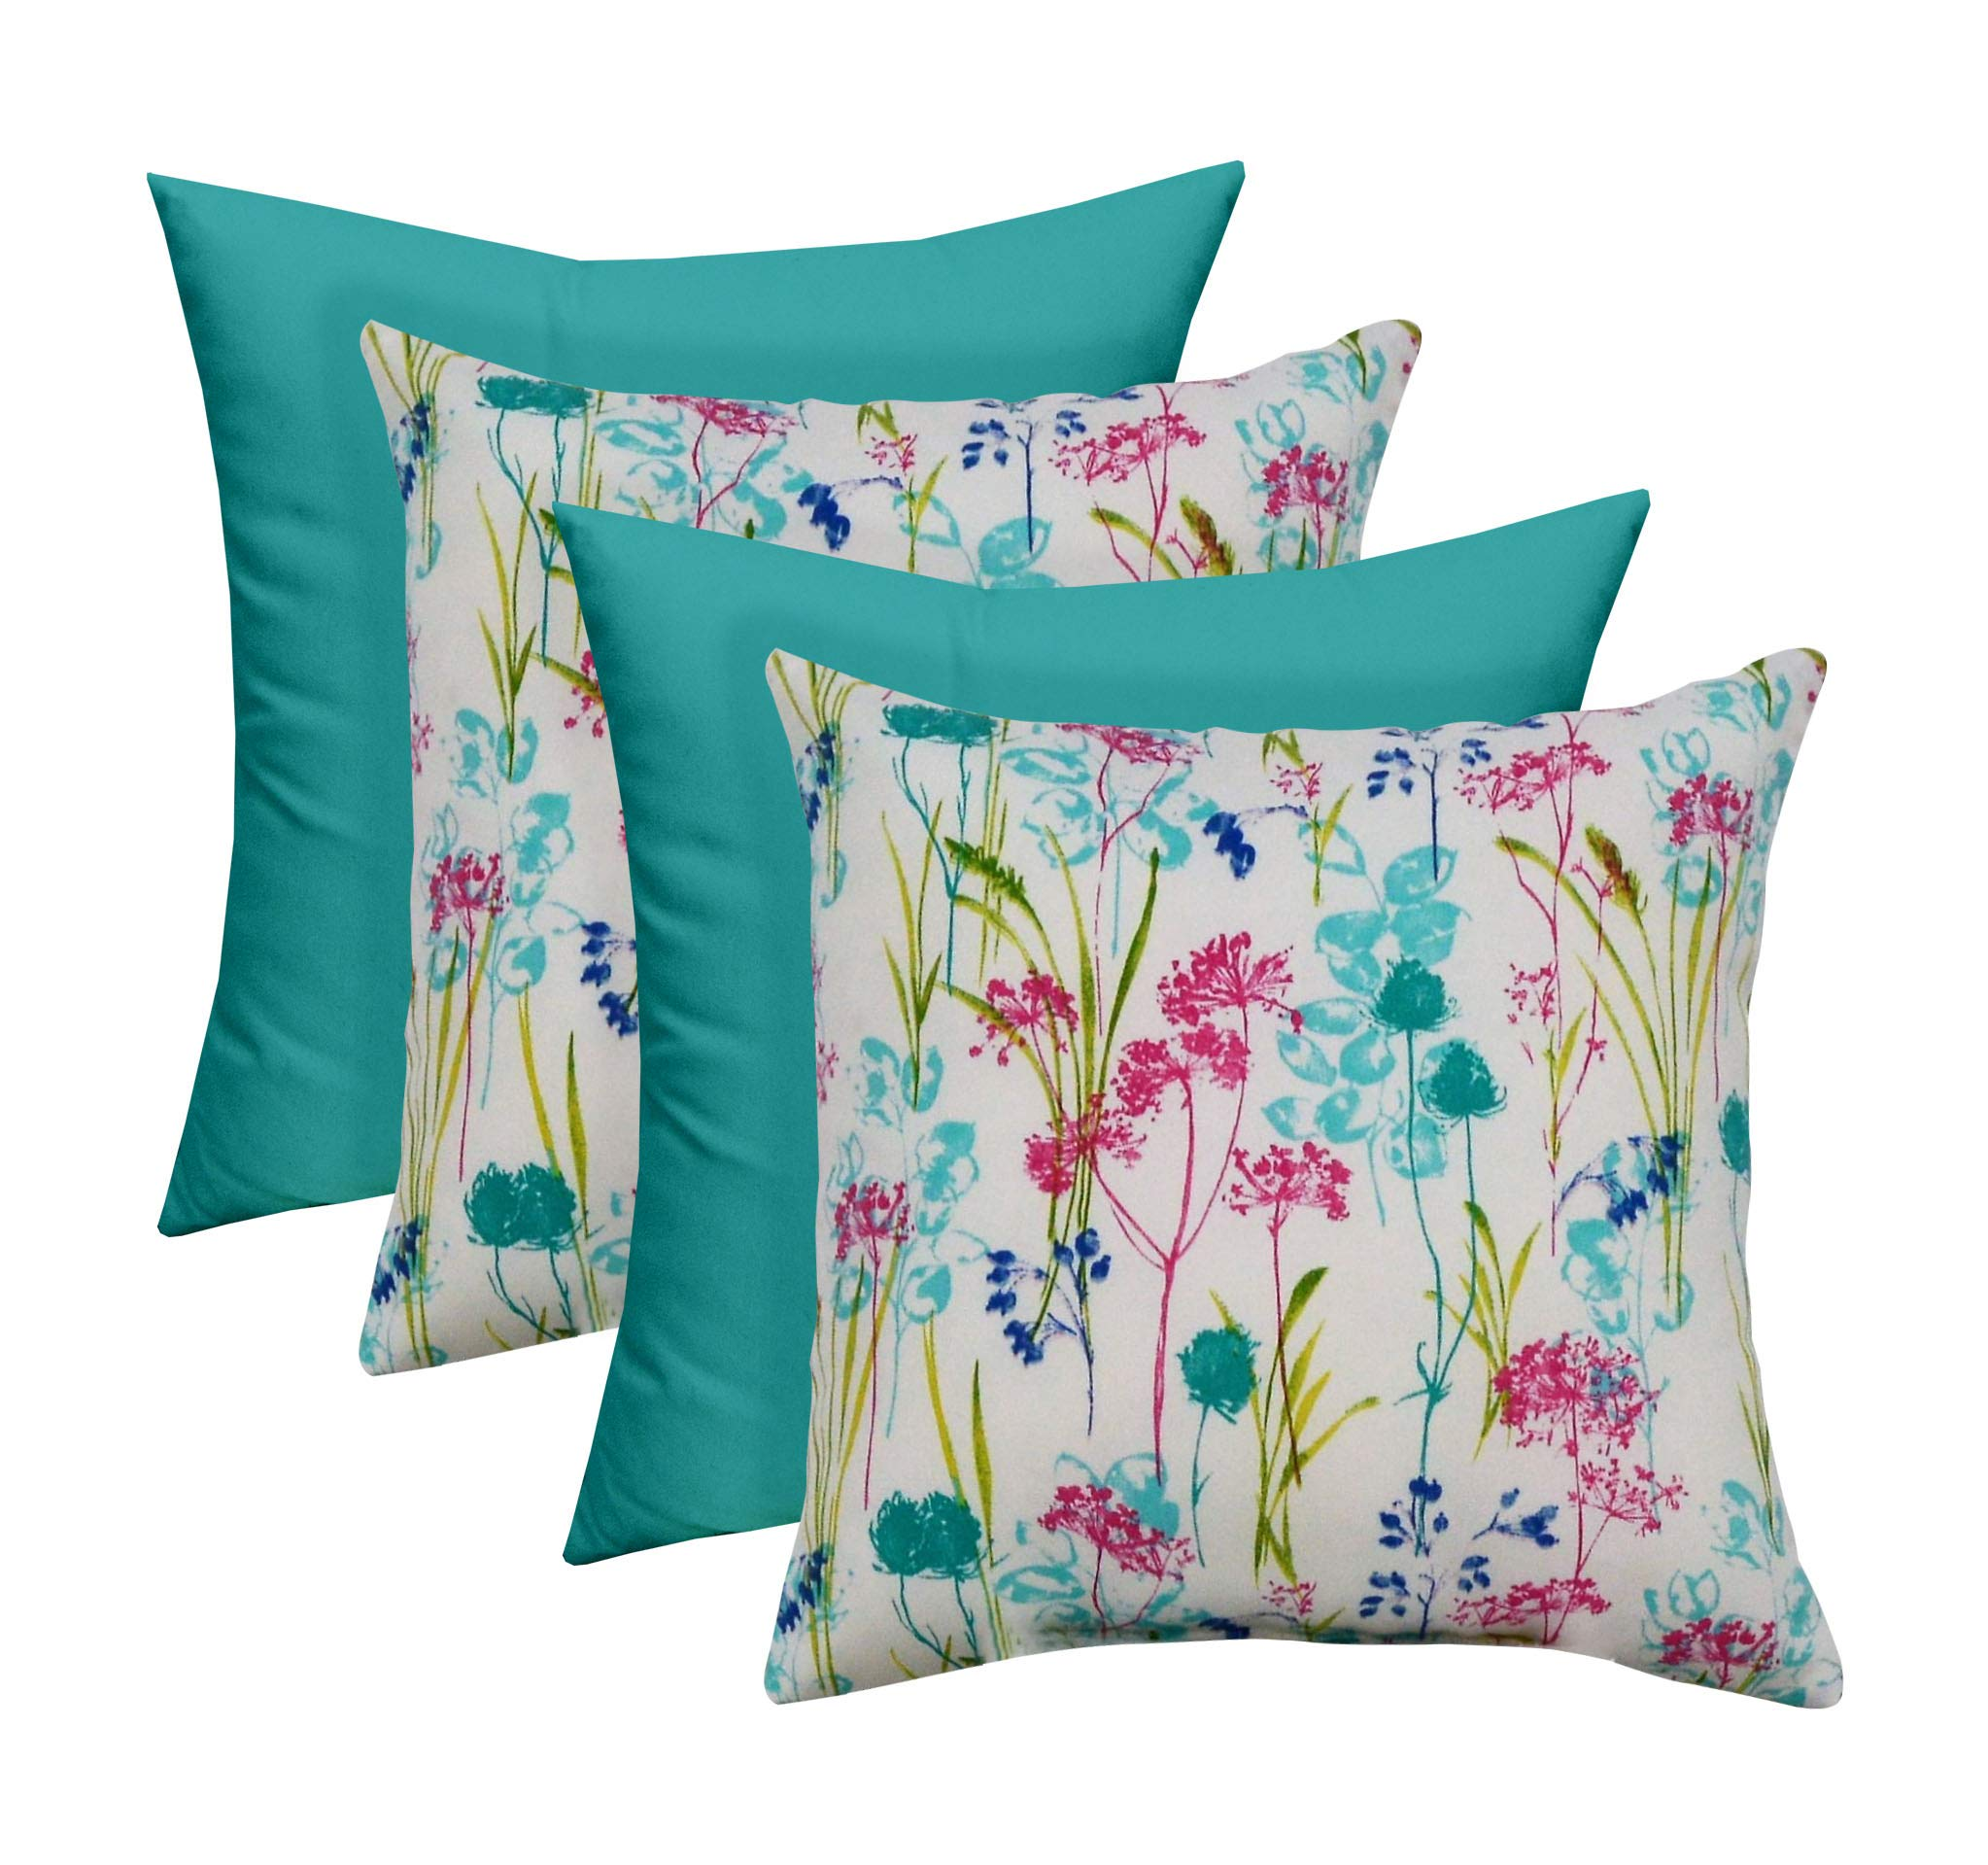 Set of 4 - Indoor Outdoor 17'' Square Decorative Throw/Toss Pillows - 2 Pink Teal Poppy Floral & 2 Cancun by RSH Décor